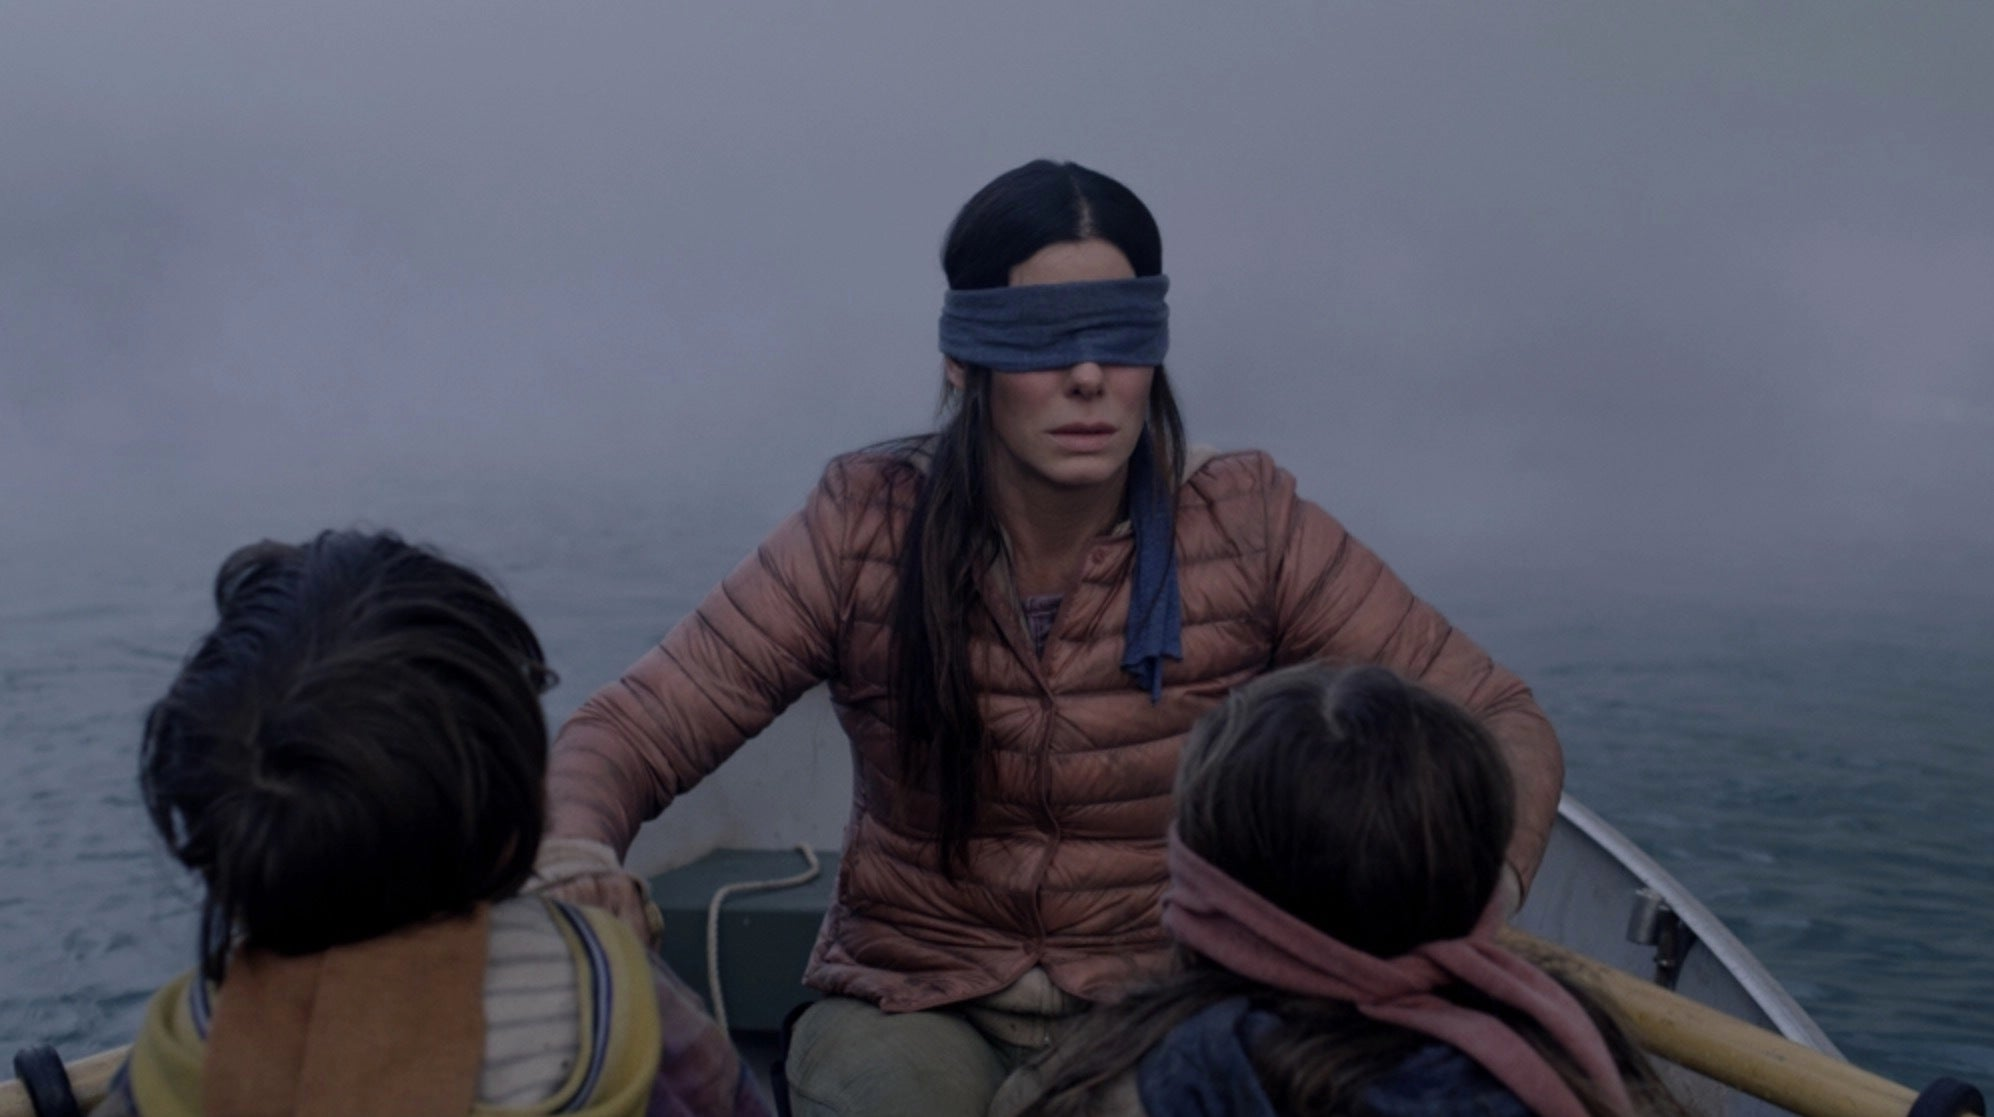 Netflix Says It Won't Pull Controversial Footage Of Actual Deadly Incident From Bird Box